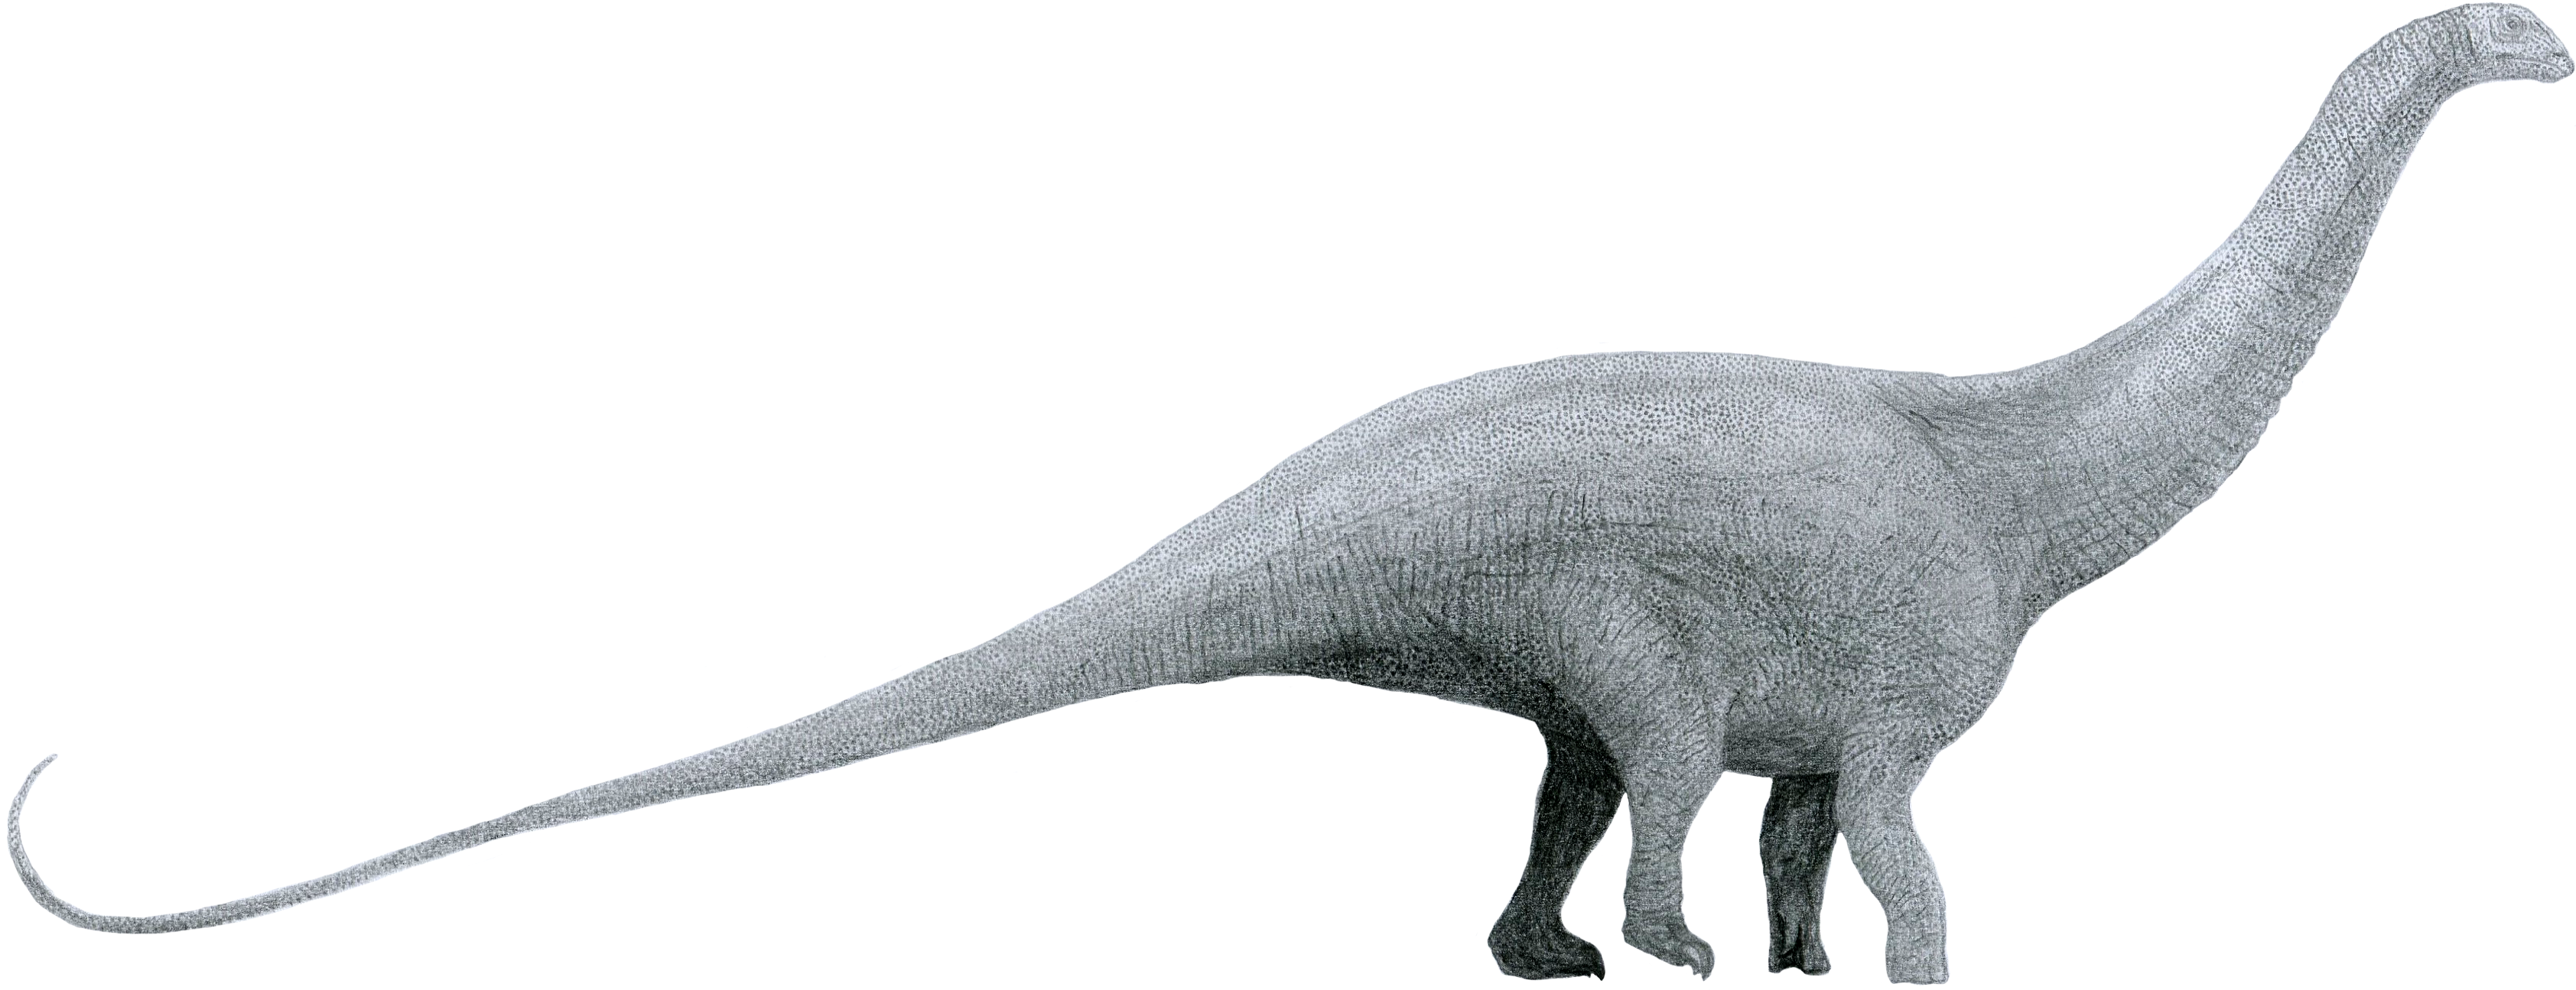 File:Brontosaurus by Tom Parker.png.